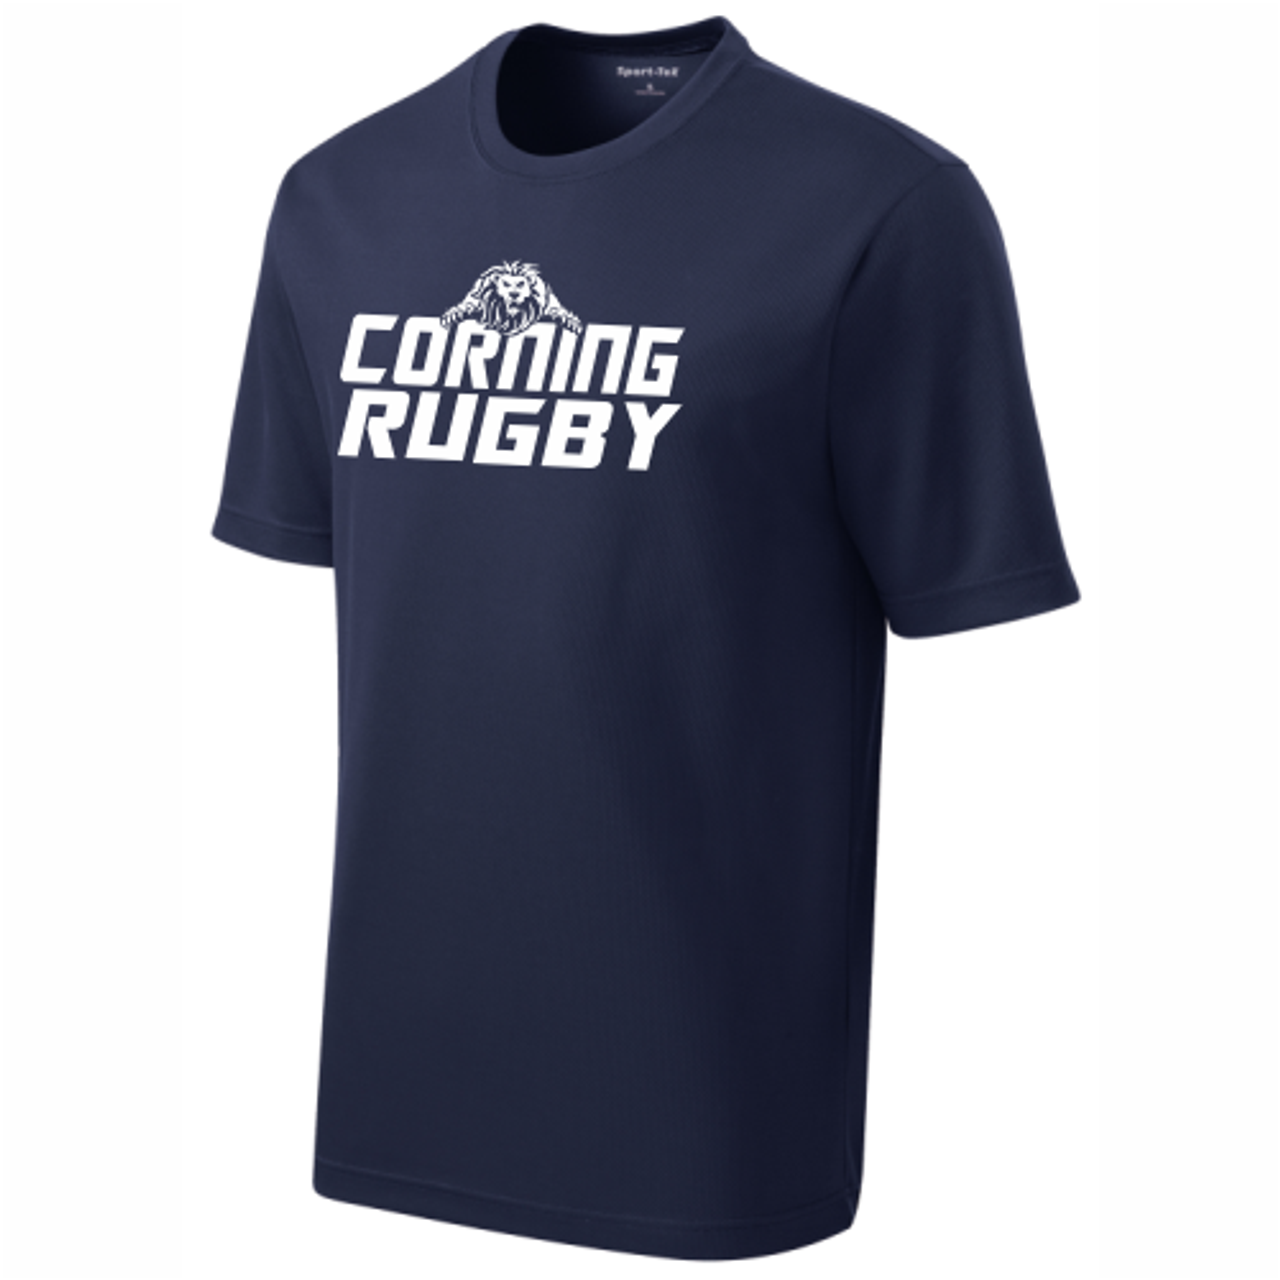 Corning Rugby Performance Tee